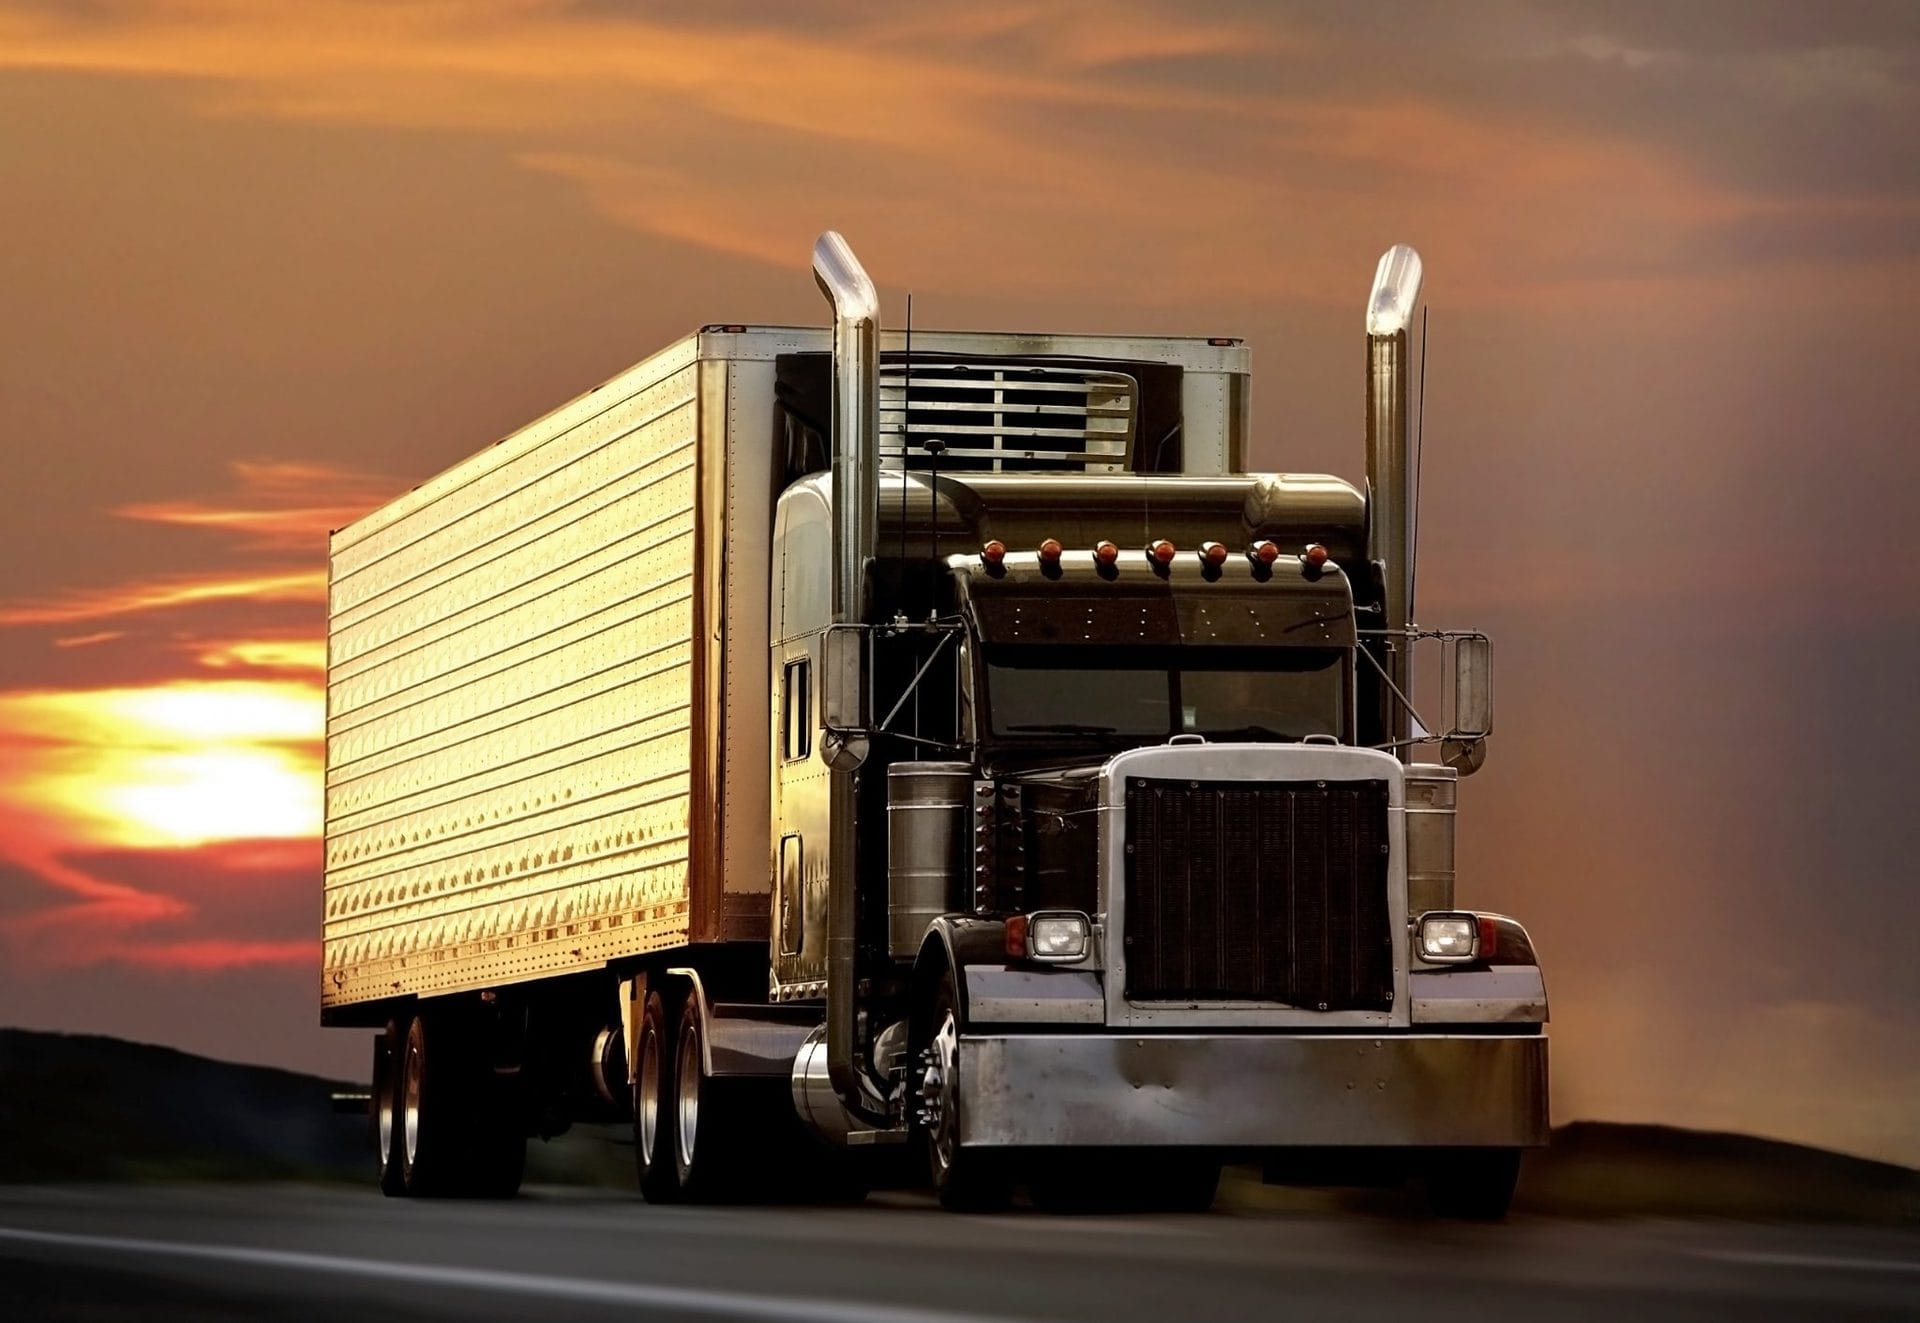 Semi-truck driving on the highway during sunset.